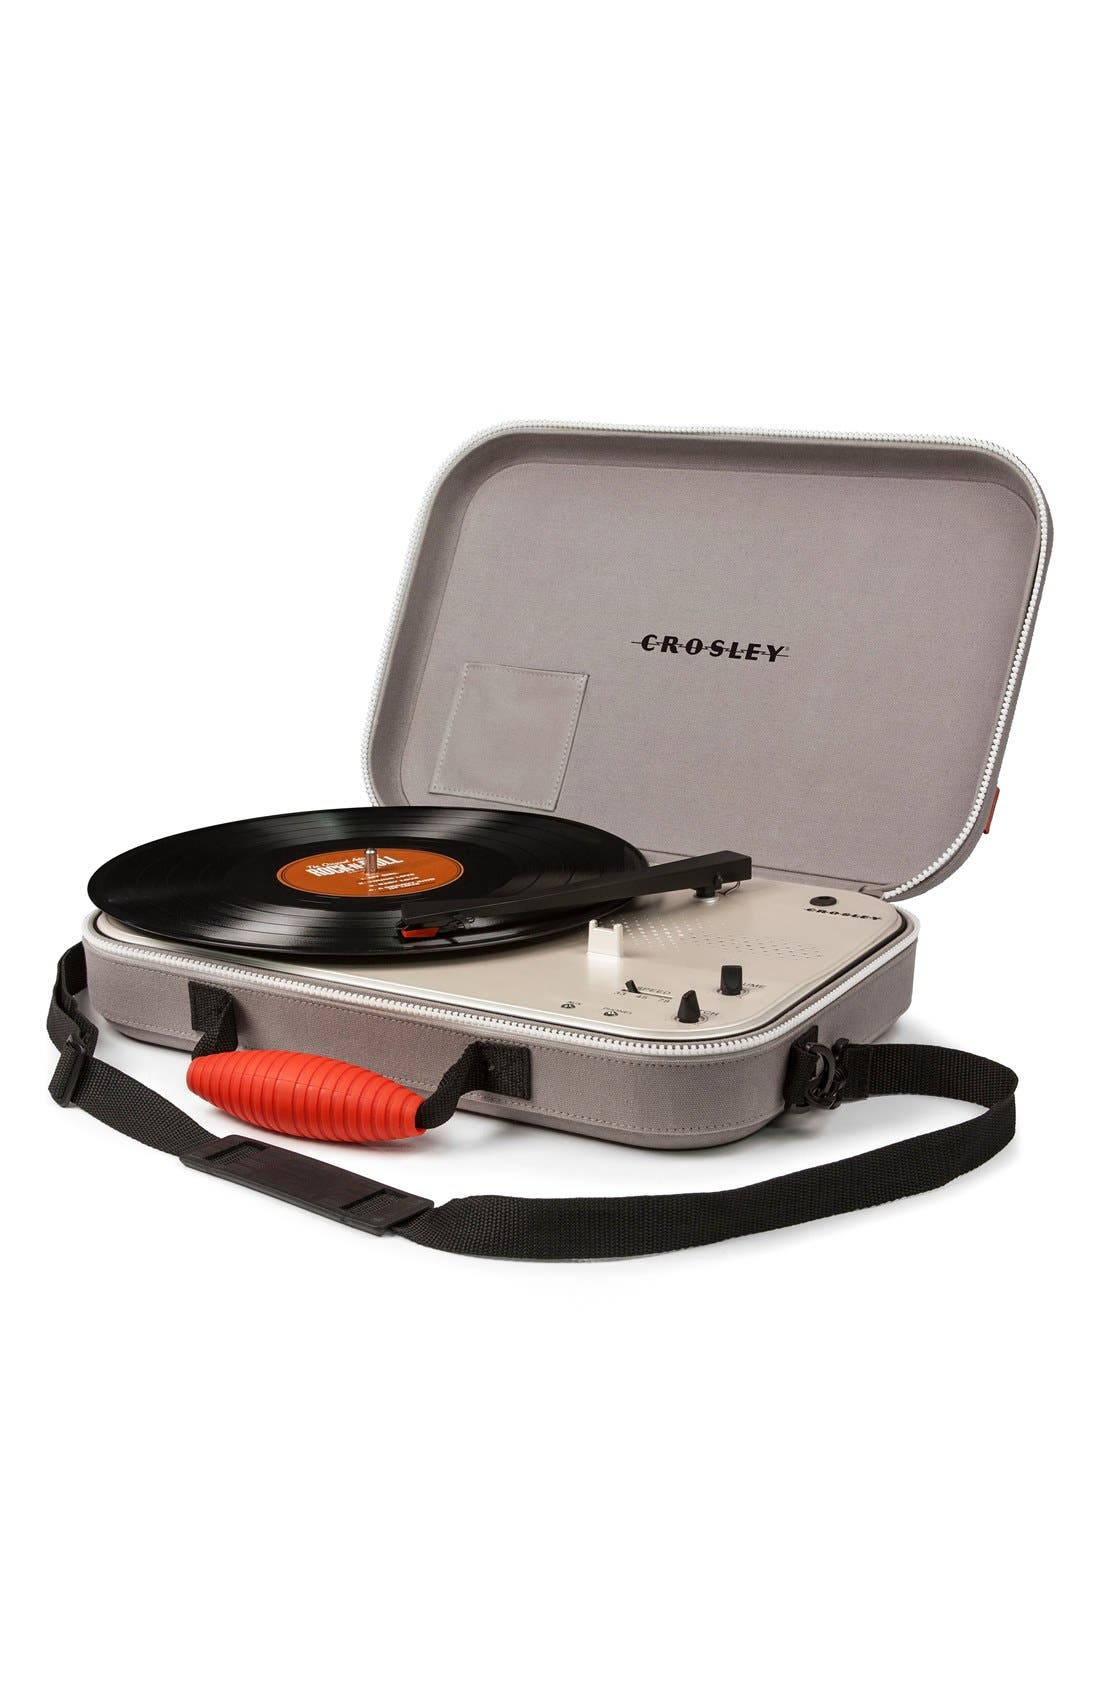 Crosley Radio 'Messenger' Portable Turntable